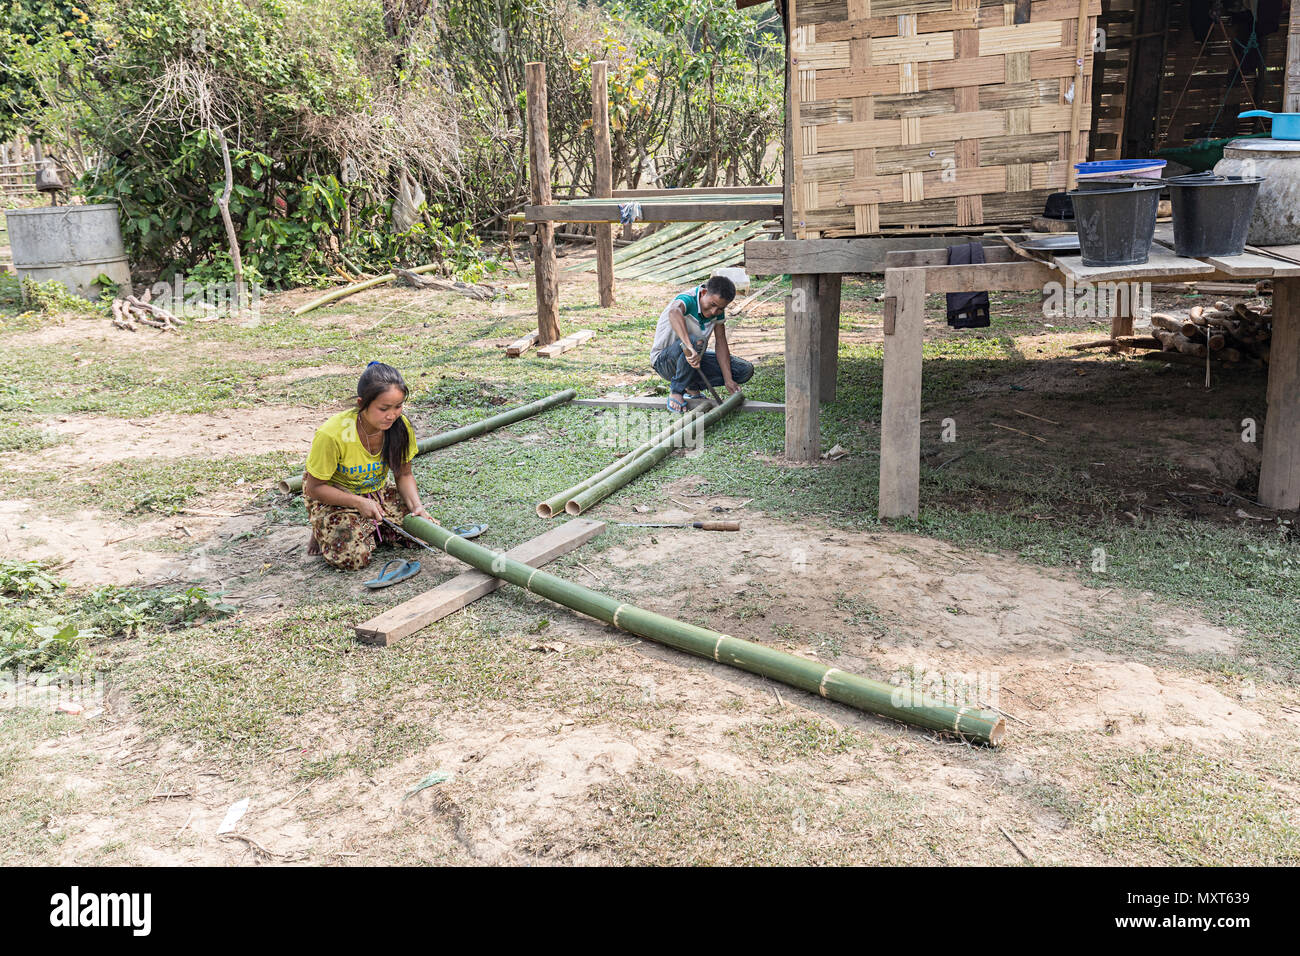 Woman and man cutting and shaping bamboo in rural village, Nong Ping, Laos - Stock Image